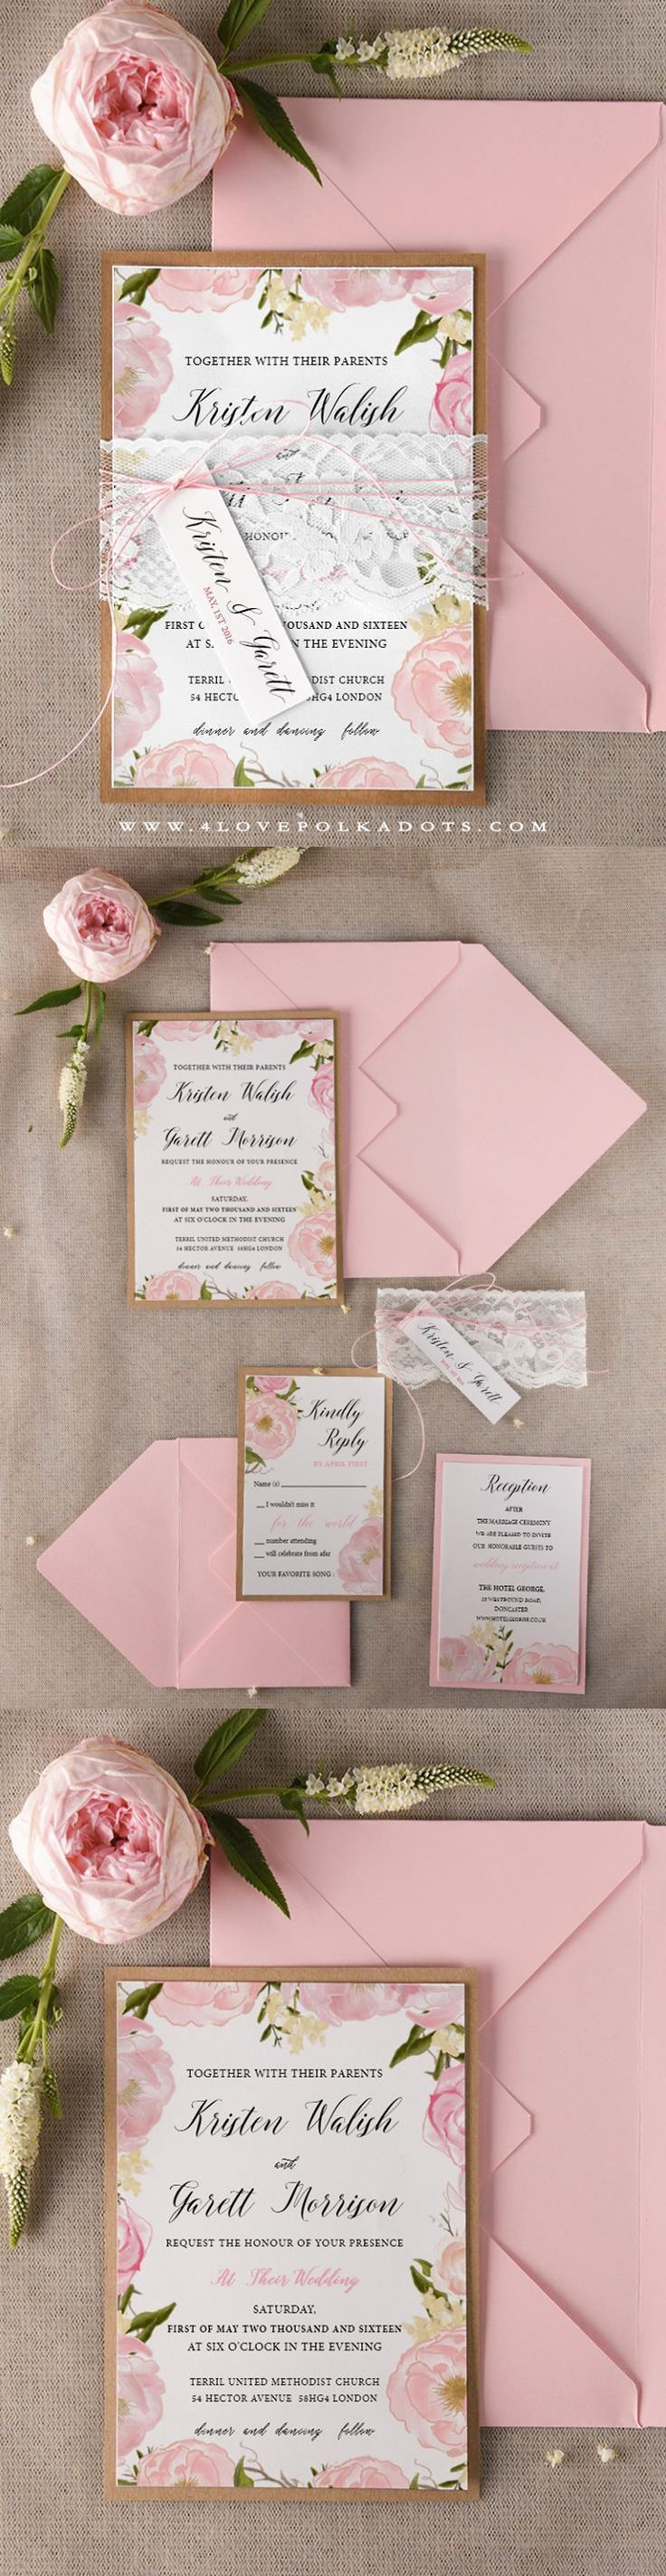 Best 25 floral wedding invitations ideas on pinterest for Wedding invitations with real flowers